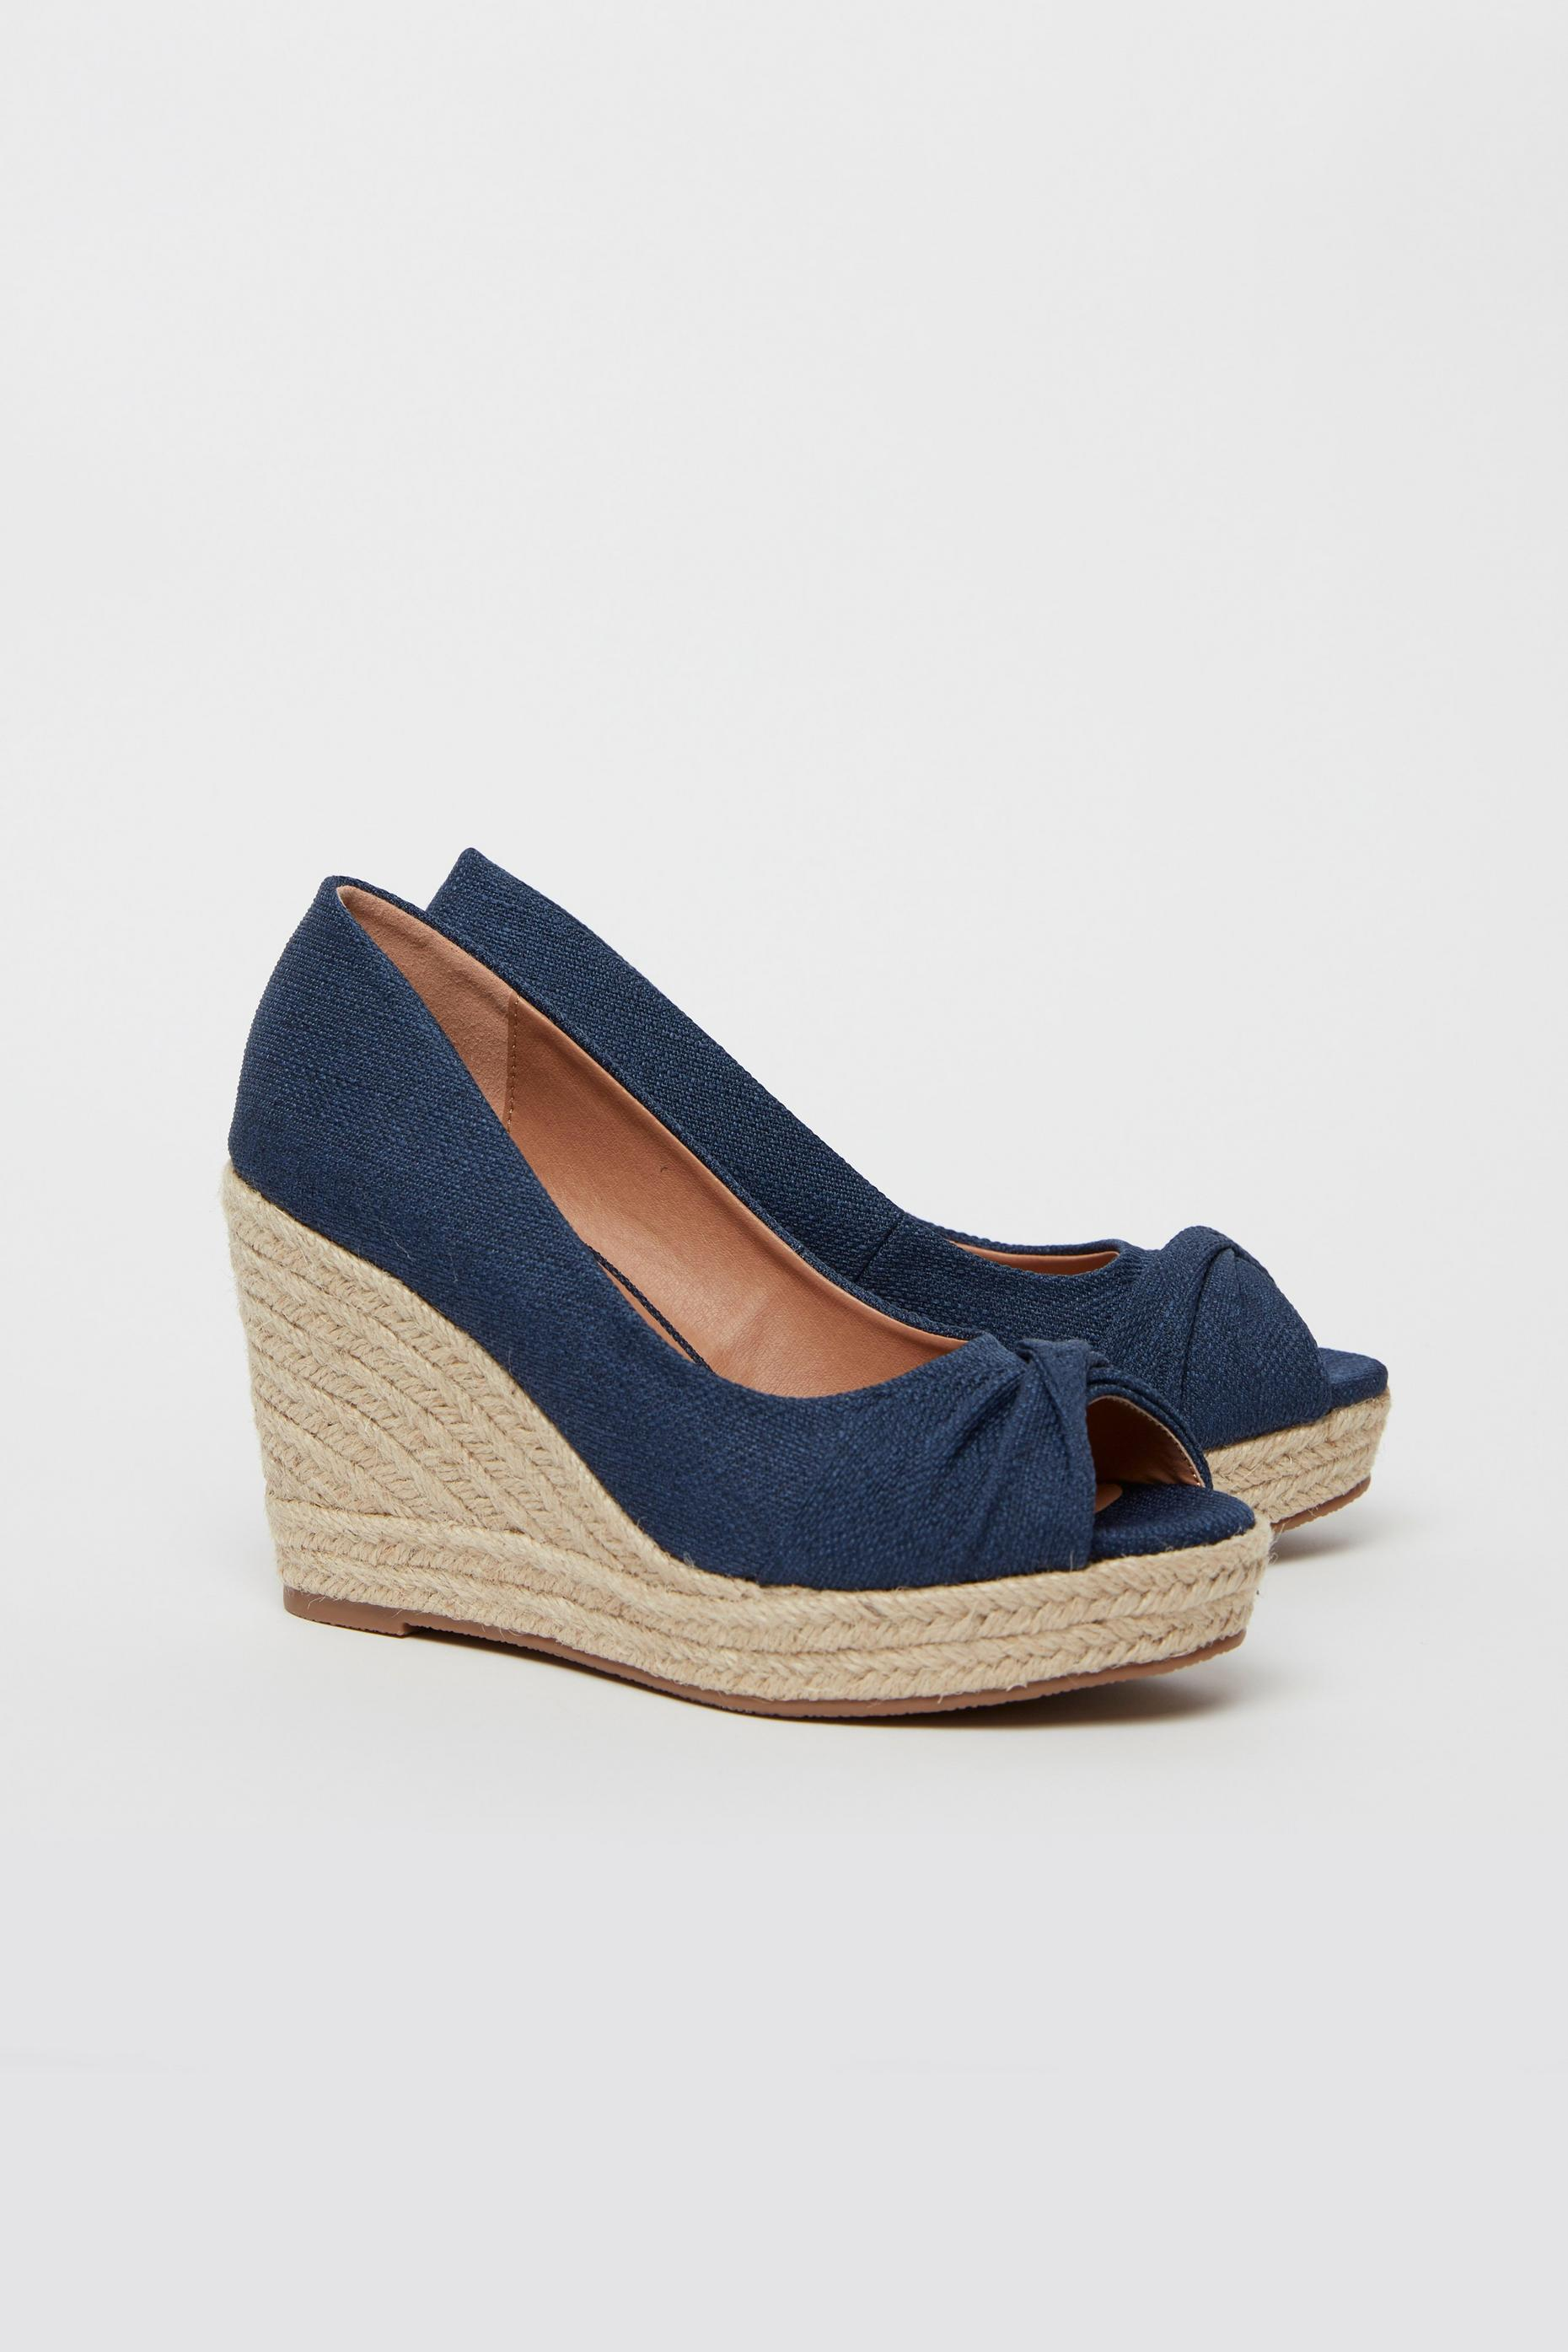 WIDE FIT Navy Knot Front Espadrille Wedge